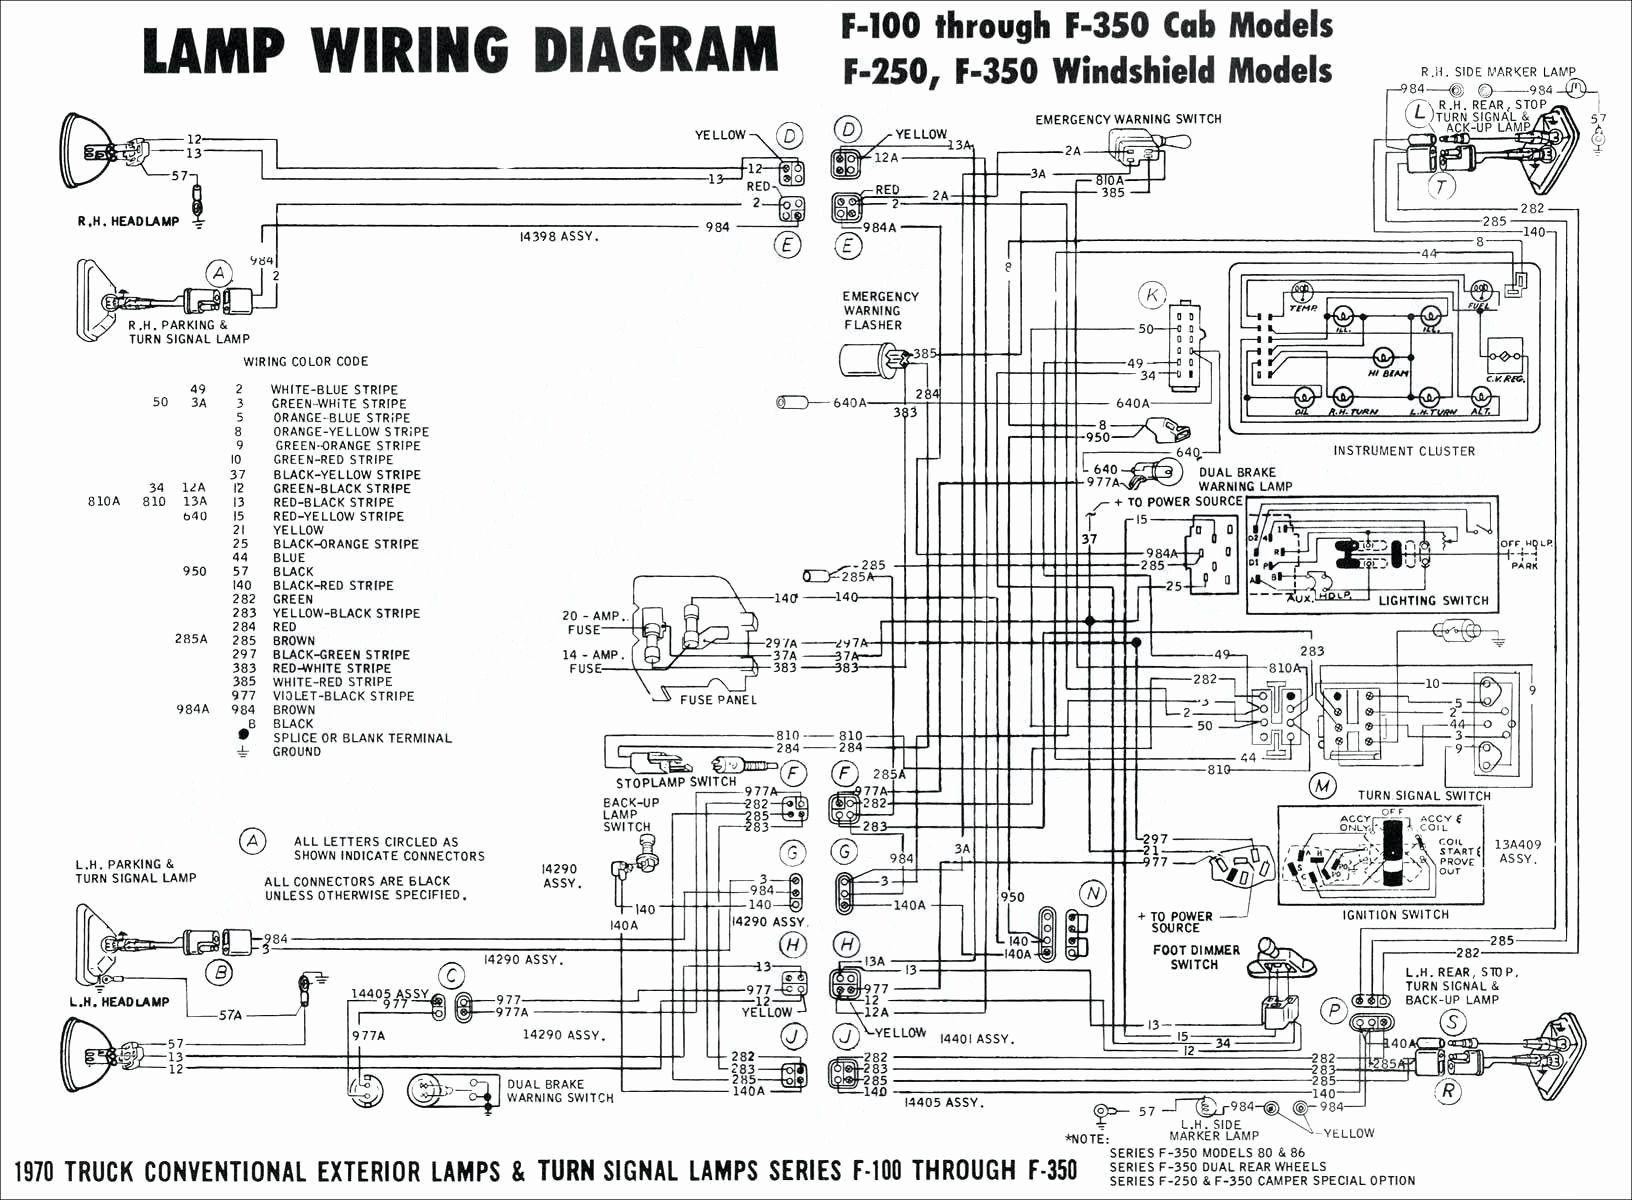 Awesome 2000 S10 Headlight Wiring Diagram In 2020 Electrical Wiring Diagram Trailer Wiring Diagram Diagram